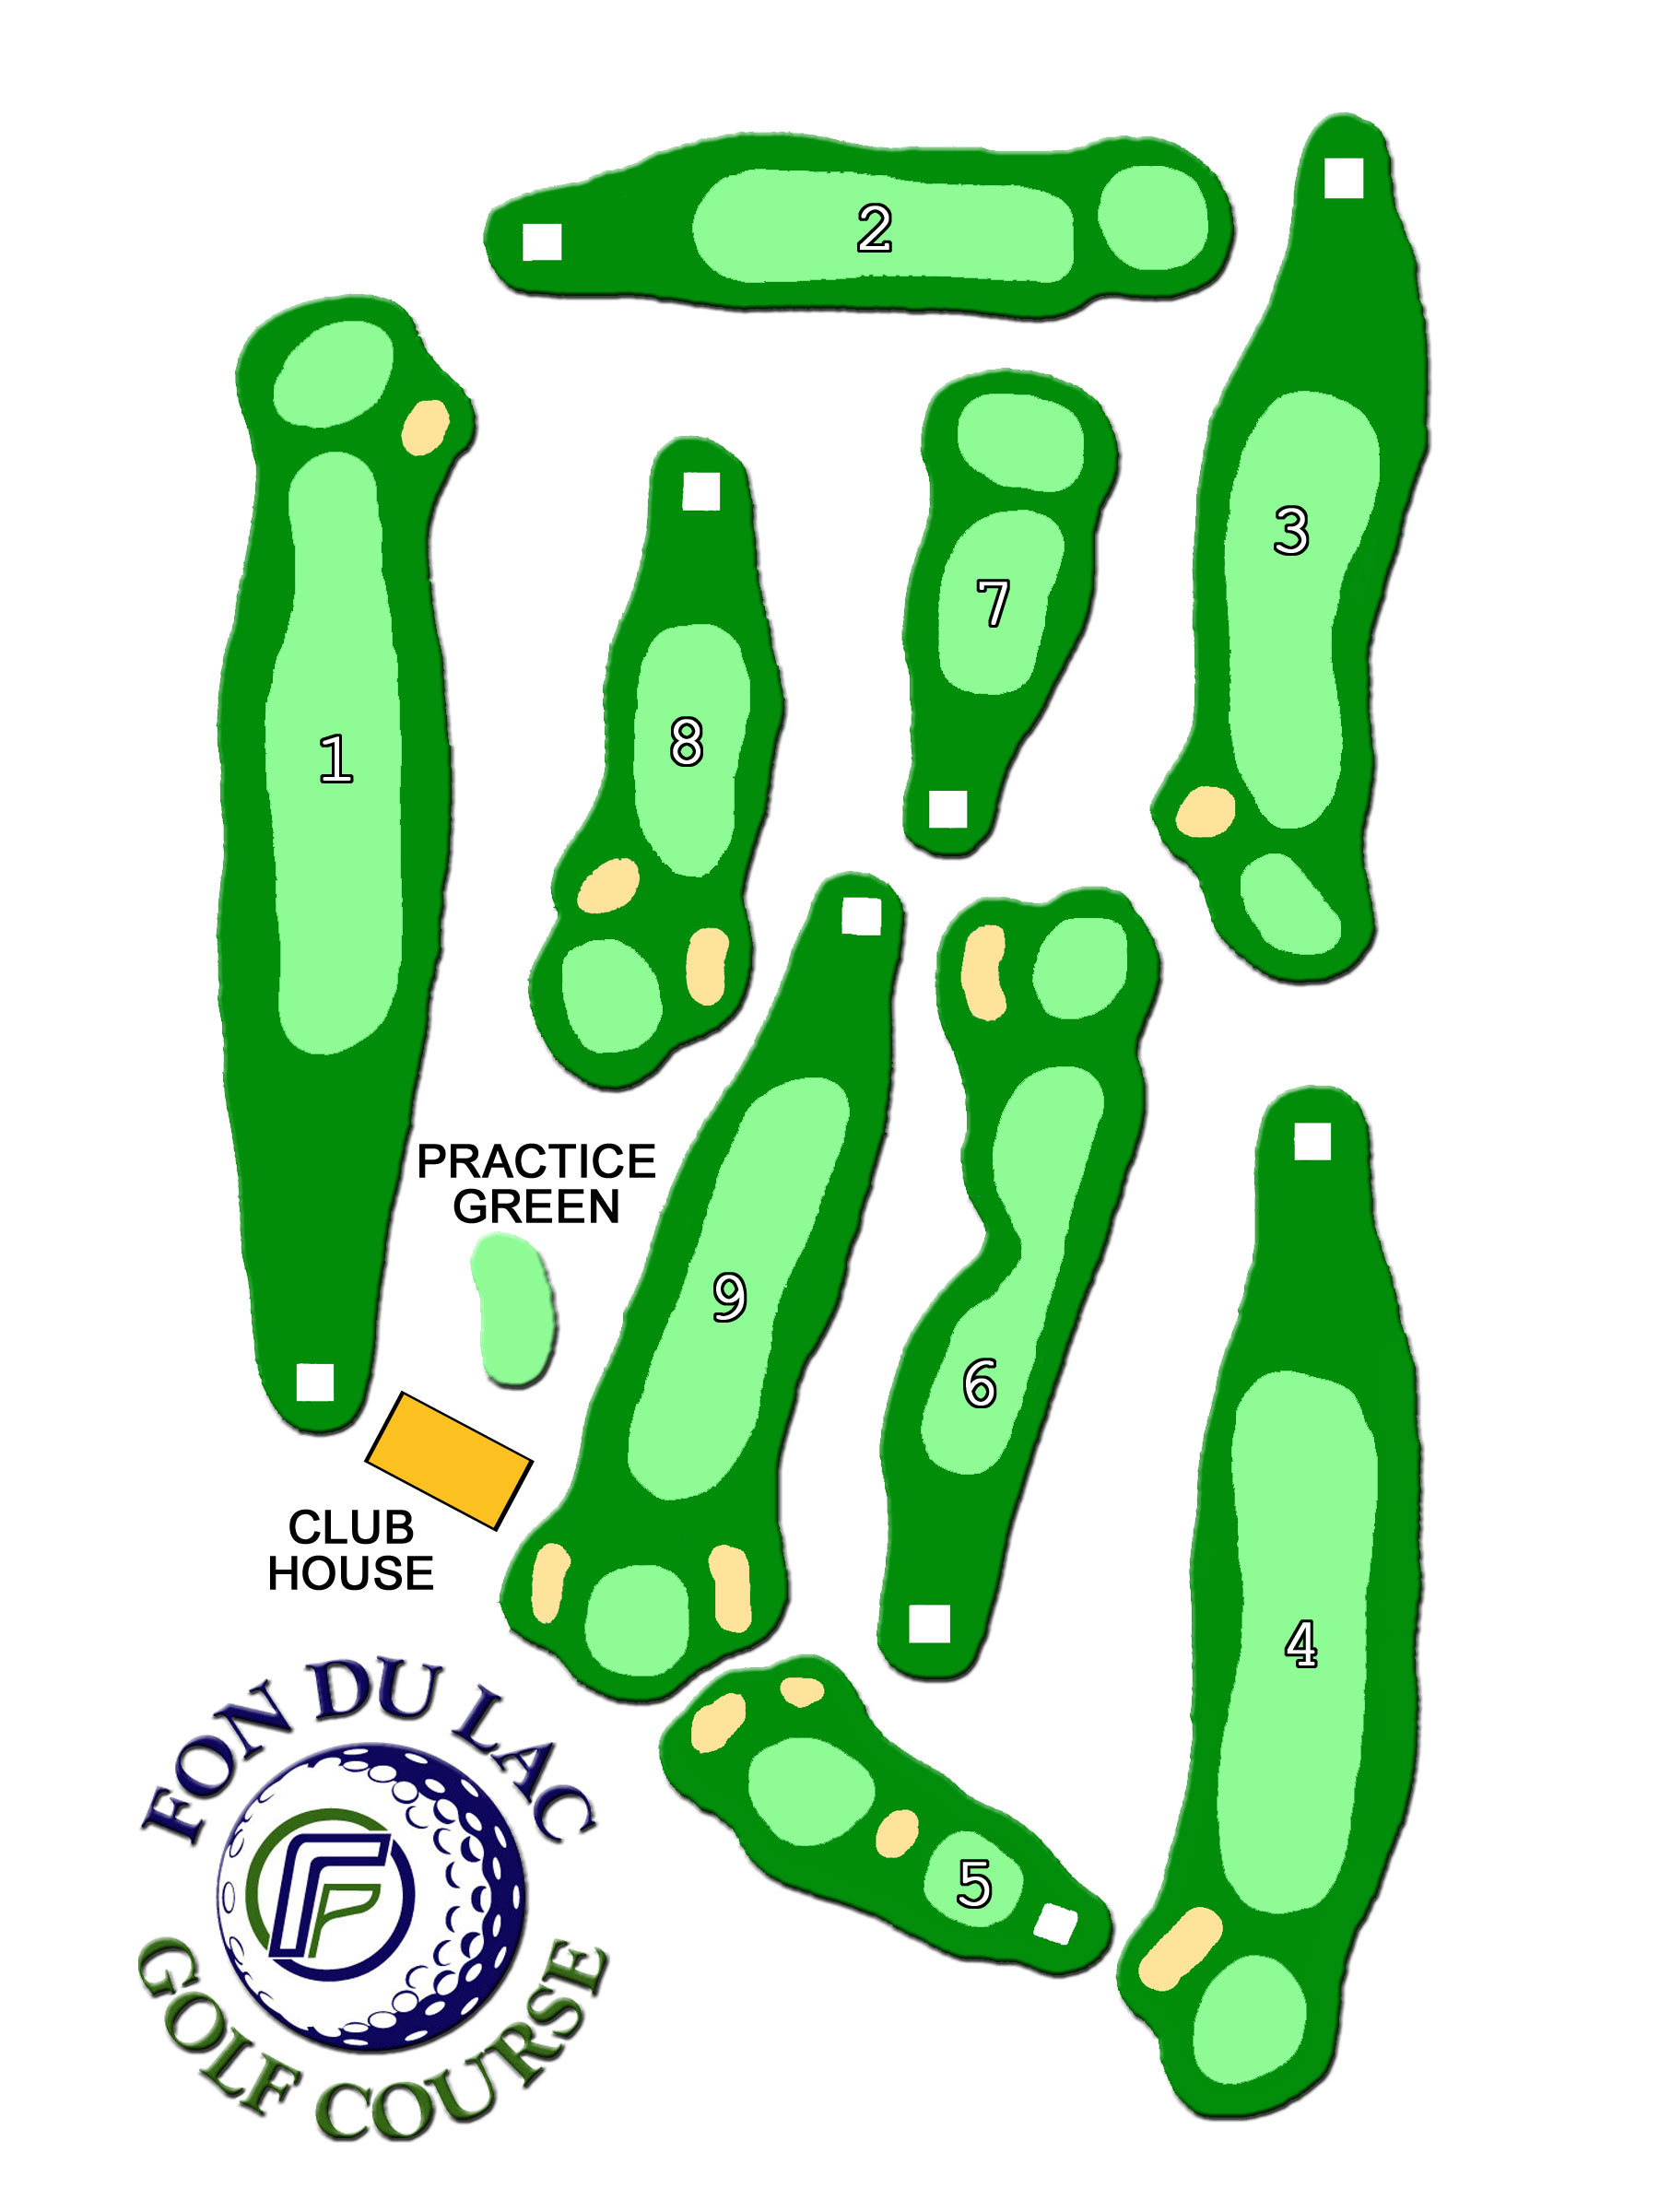 Par-3-layout-with-logo-for-